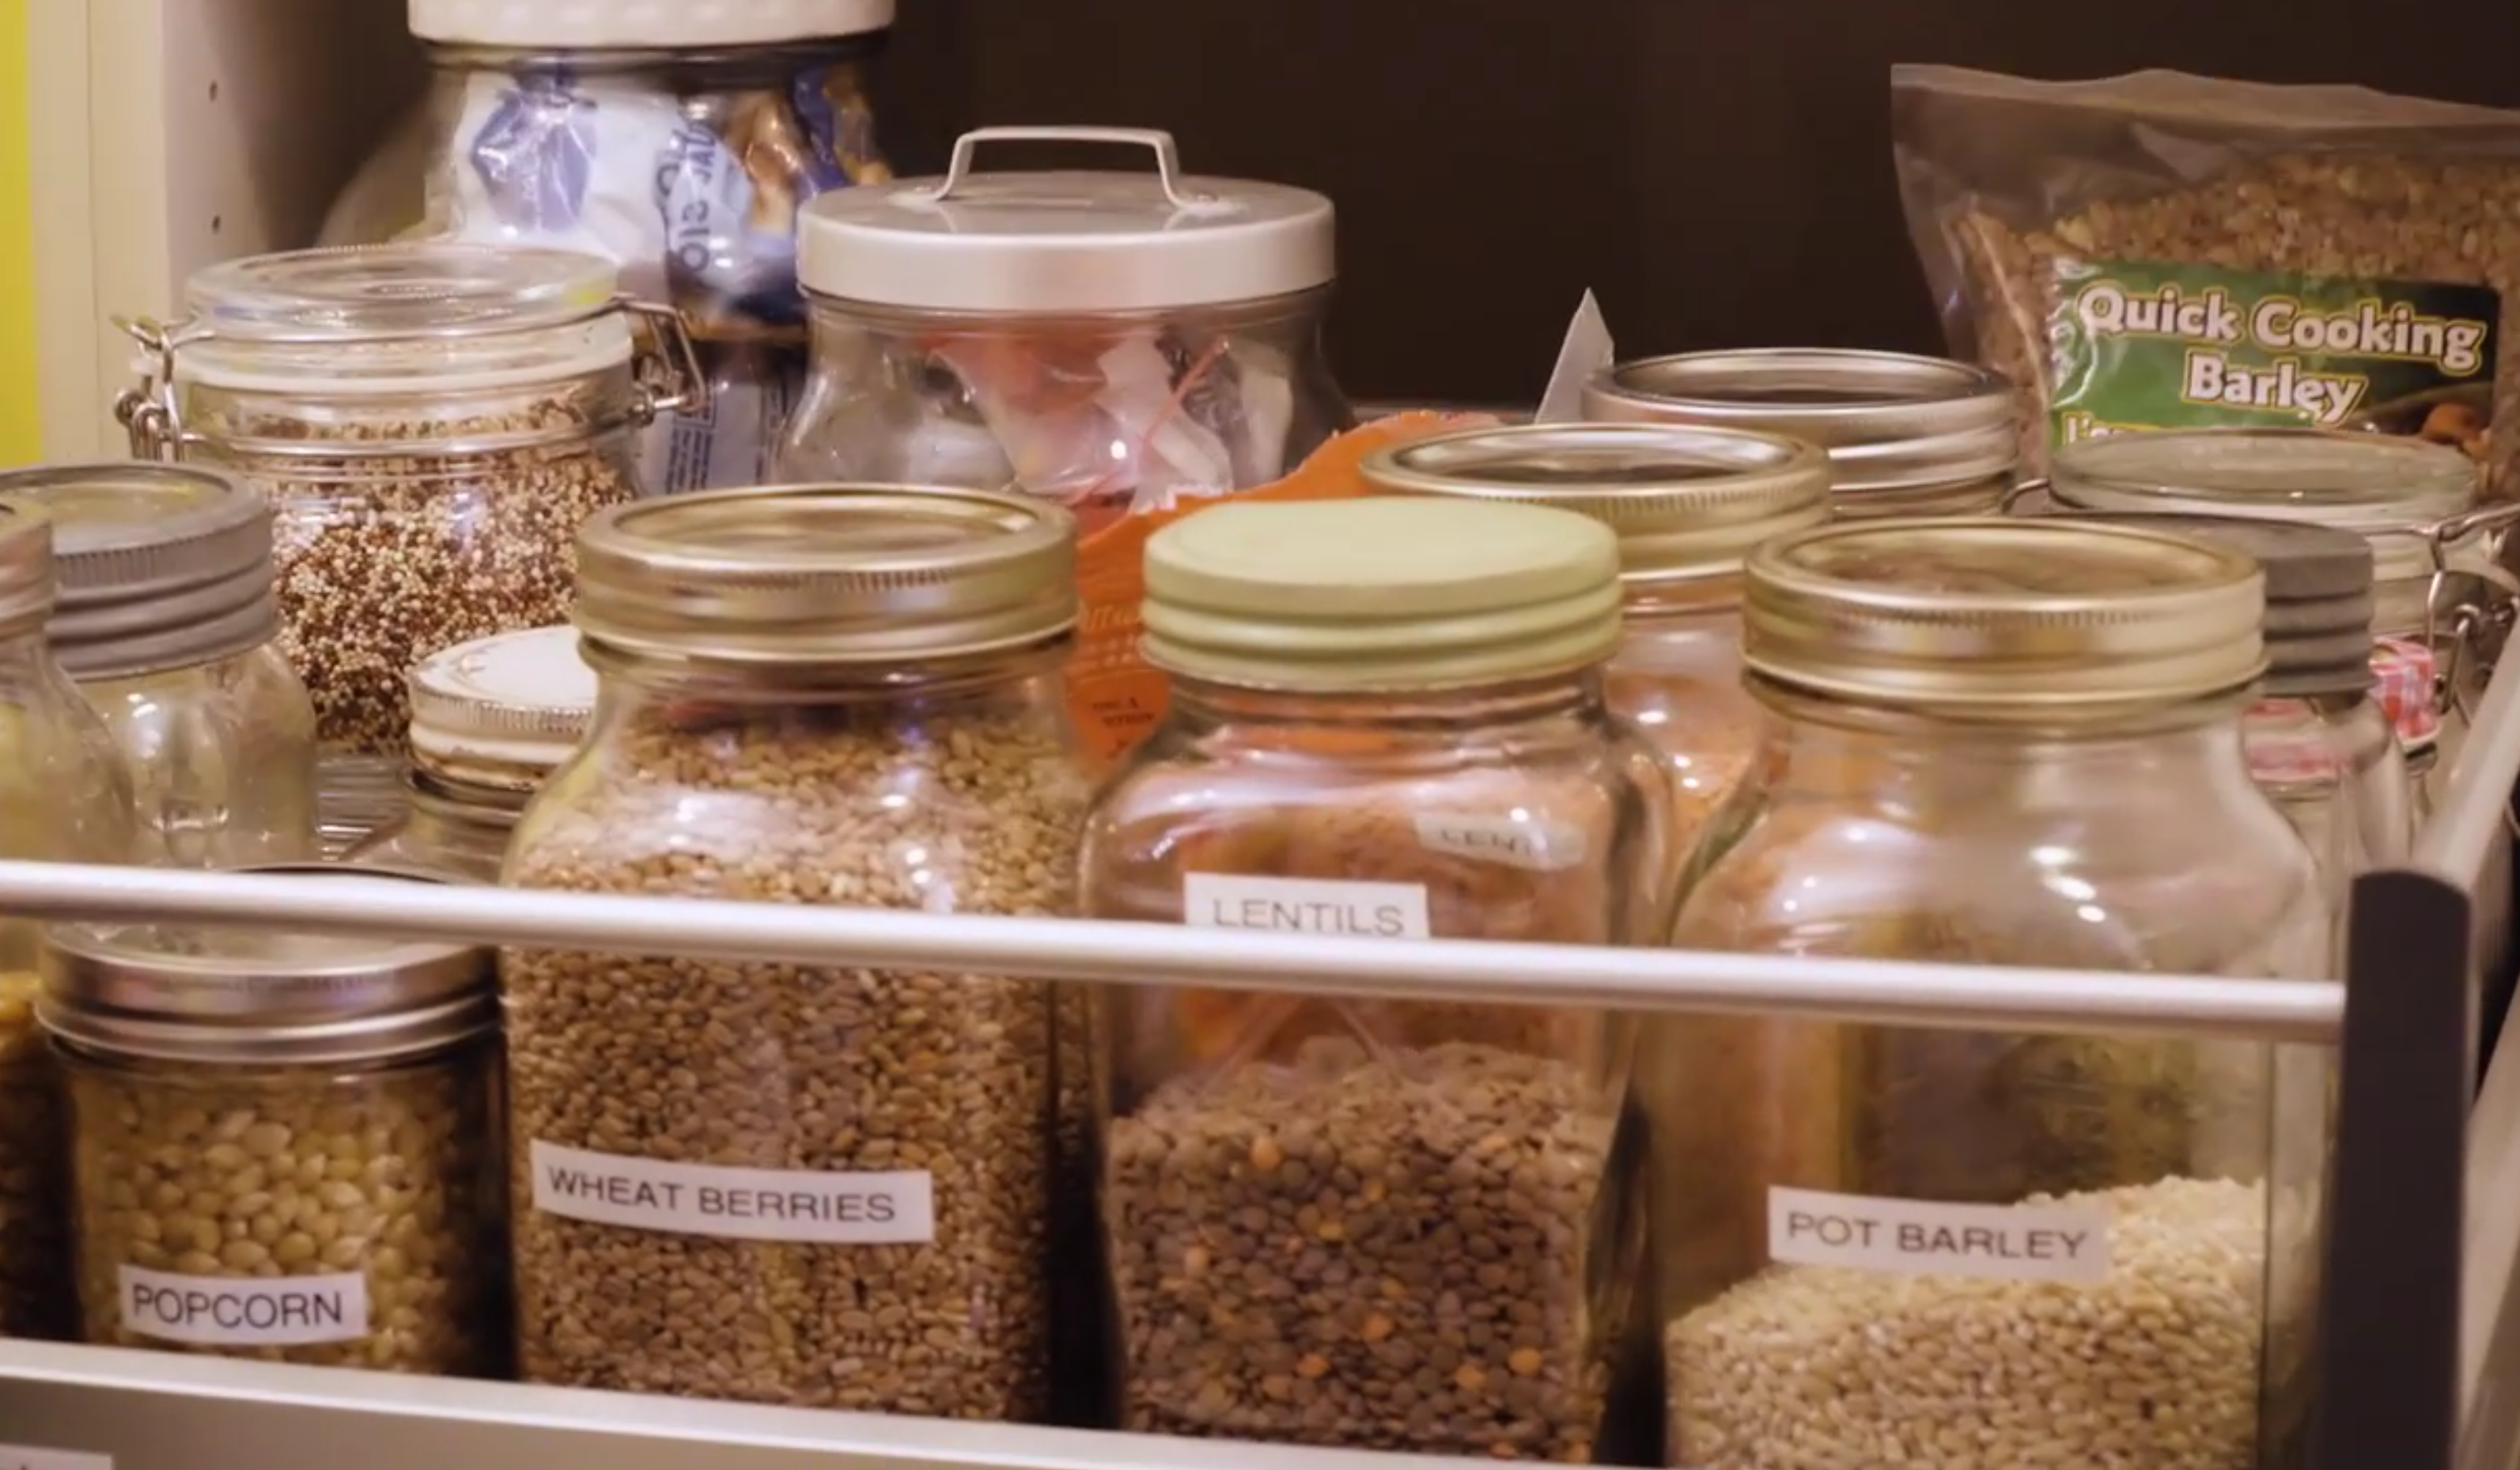 Mairlyn Smith's organized kitchen pantry